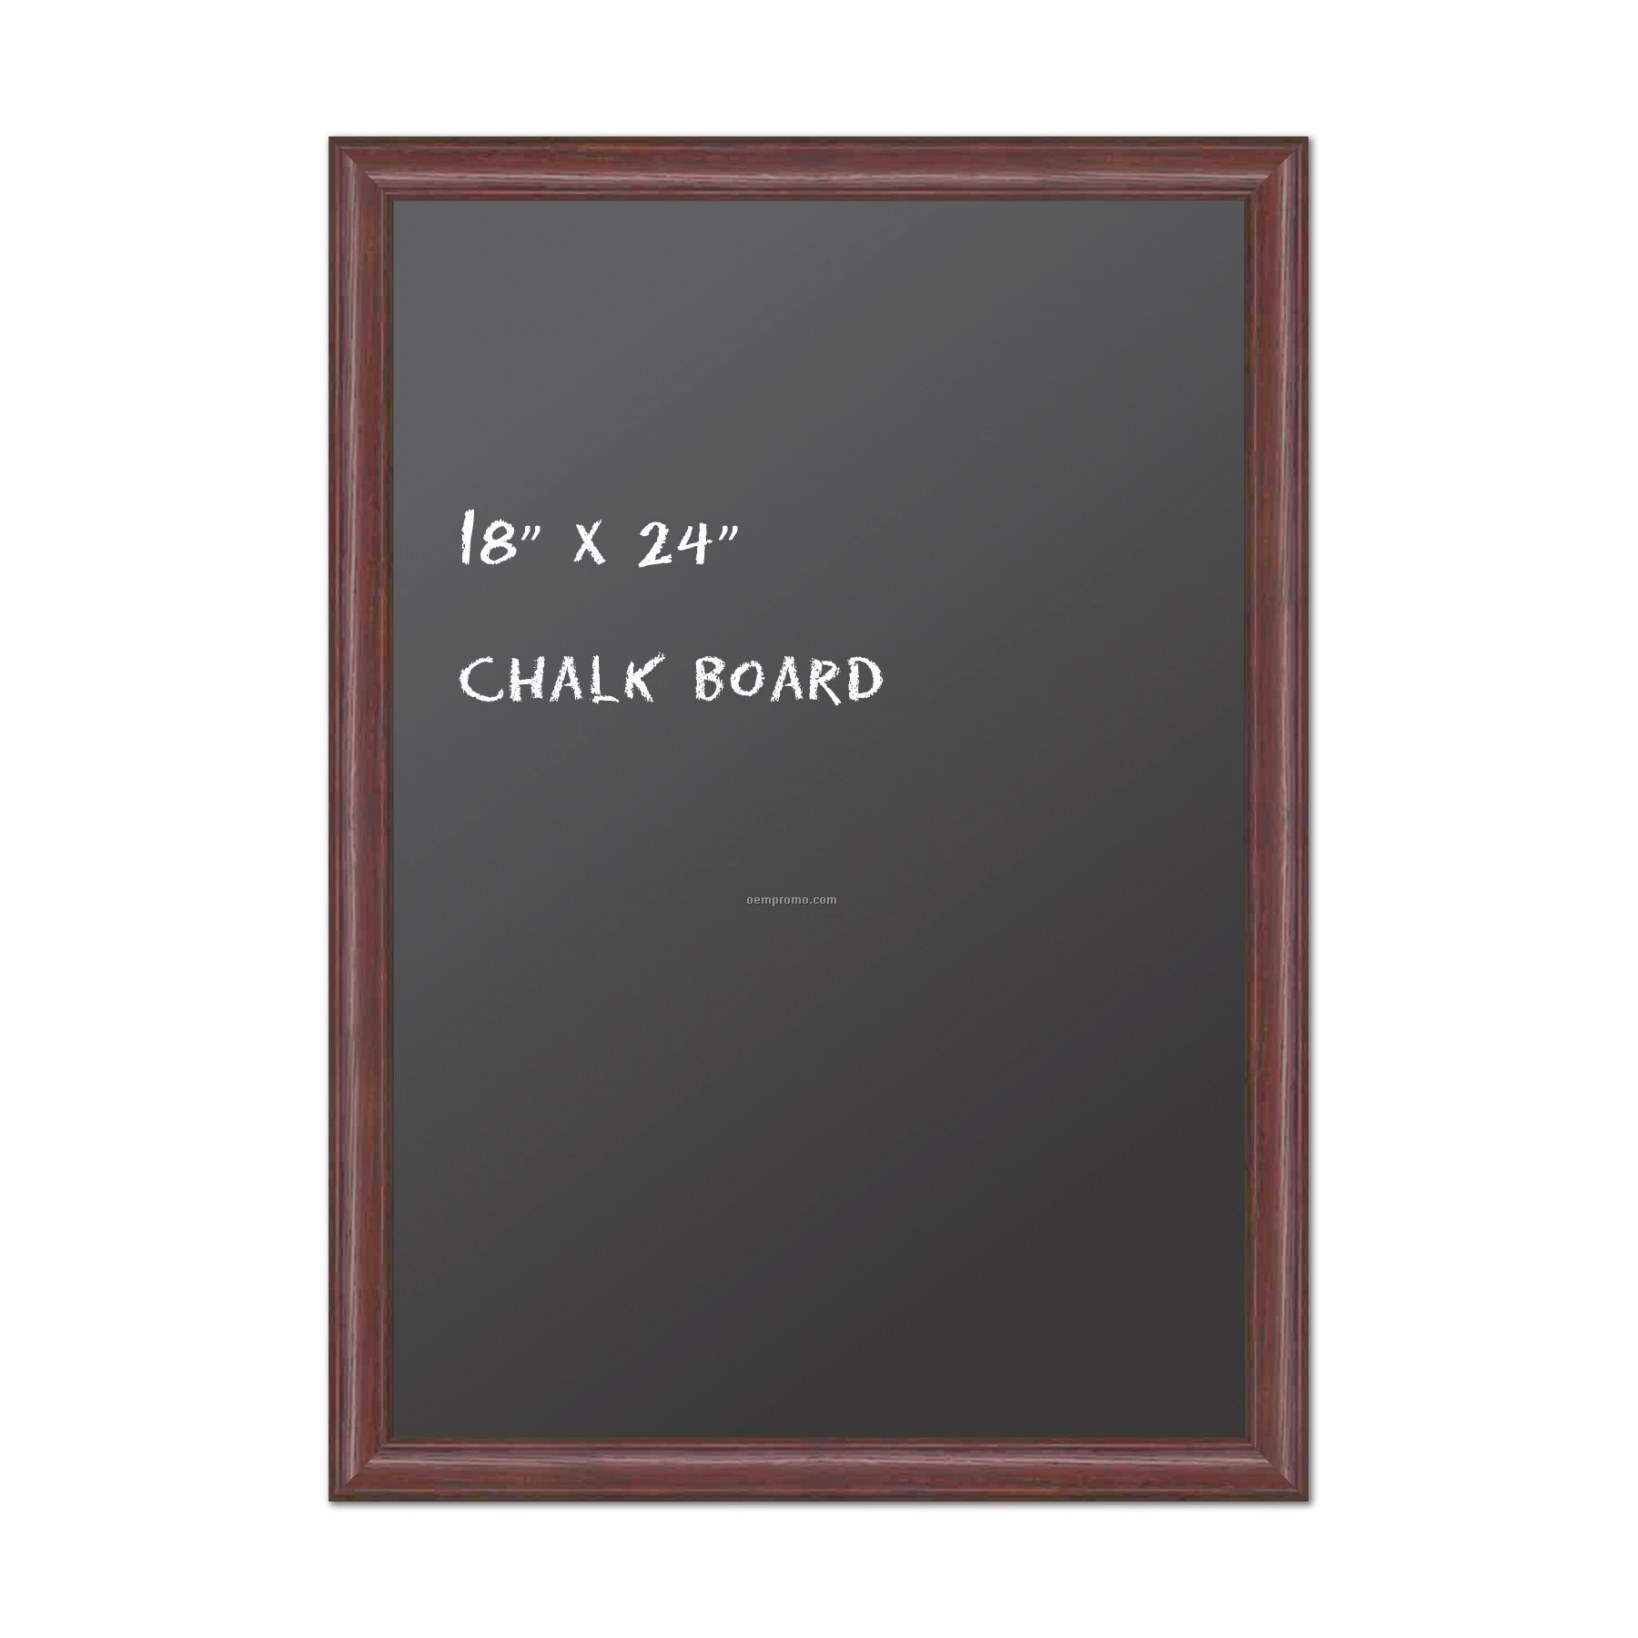 "Chalk Board 18"" X 24"". Real Wood Frame - Honey Oak Finish with regard to 18 X 24 Frame"